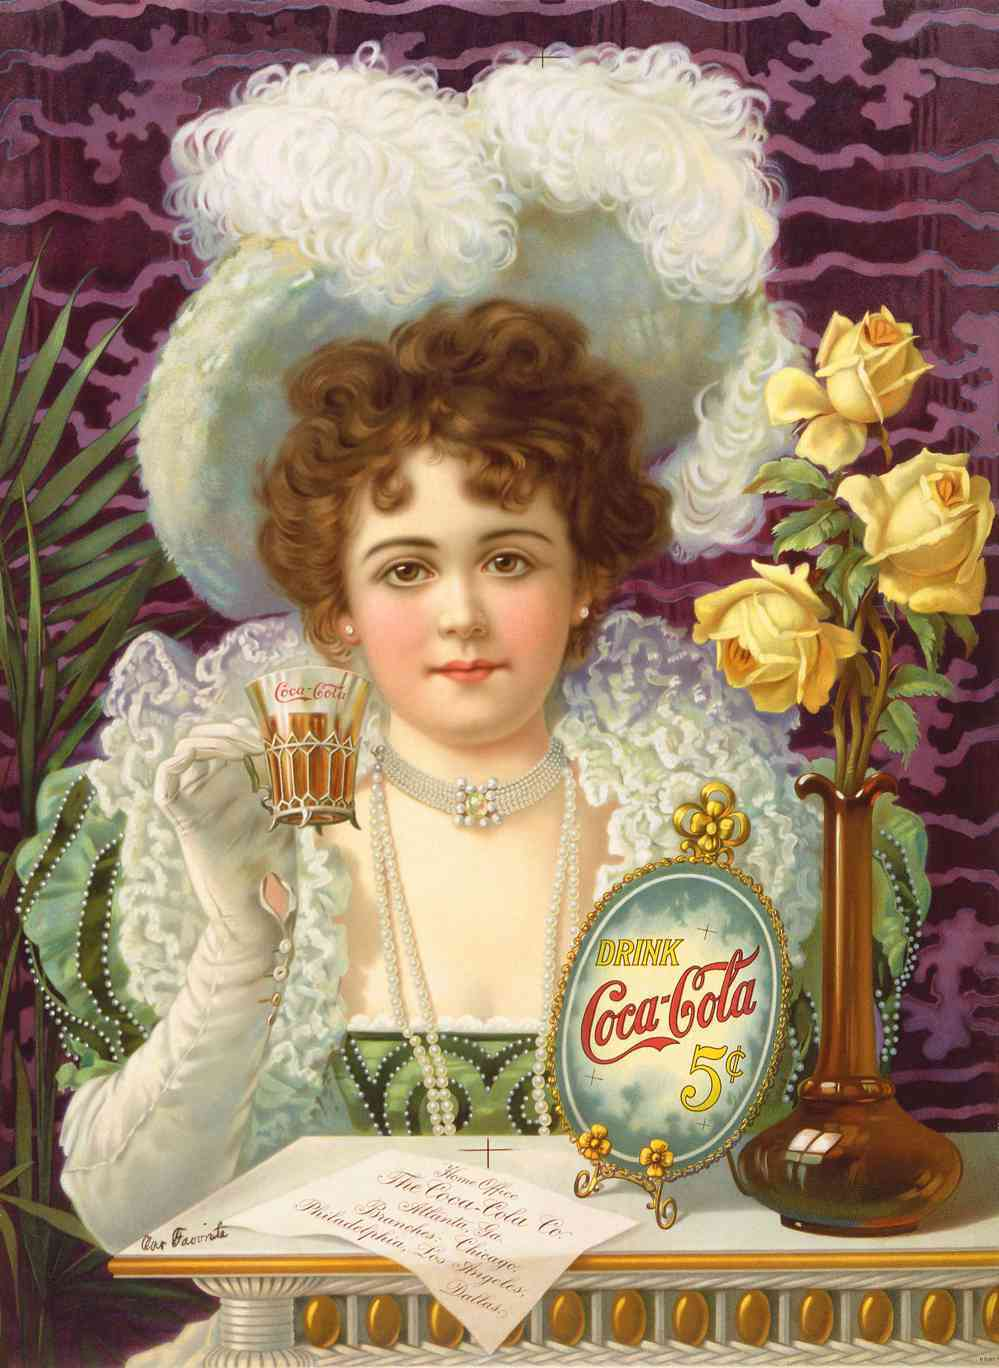 Coca Cola 1900 - 40x50 inch Canvas Wall Art Home Decor